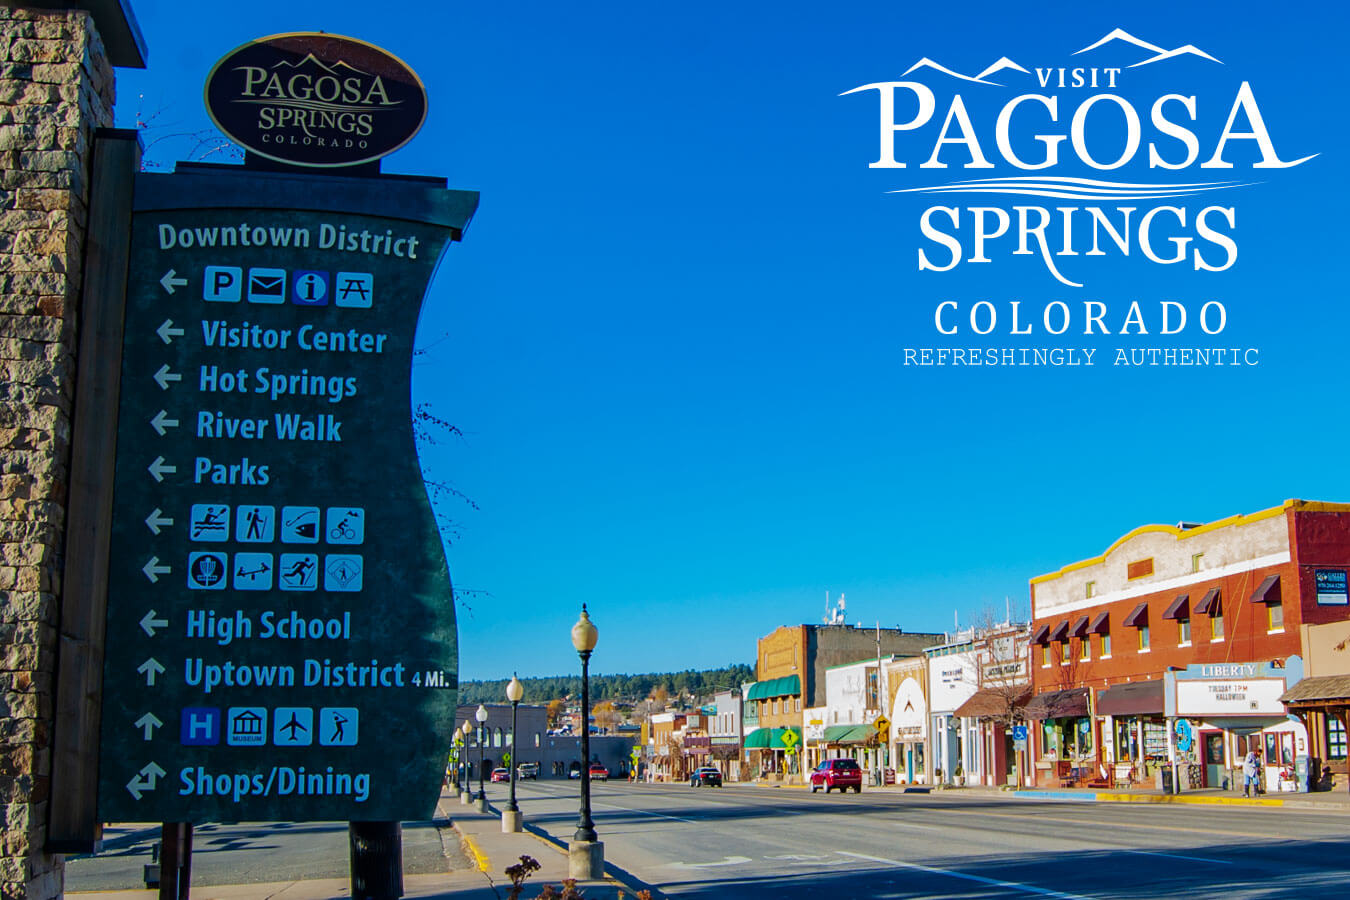 Visit Pagosa Springs - The Official Visitor's Guide to